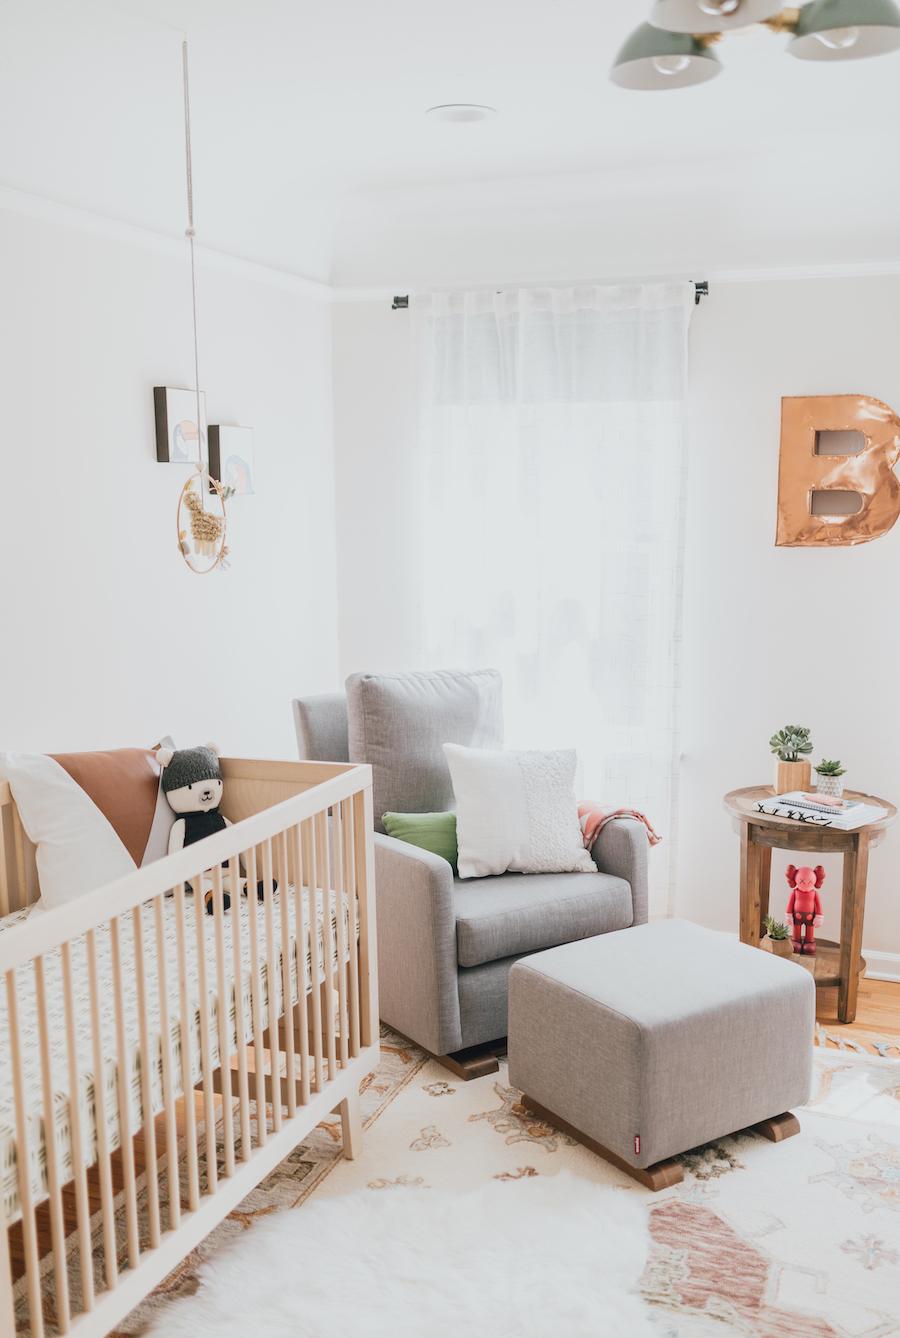 Eclectic Modern Nursery Design | Little Crown Interiors